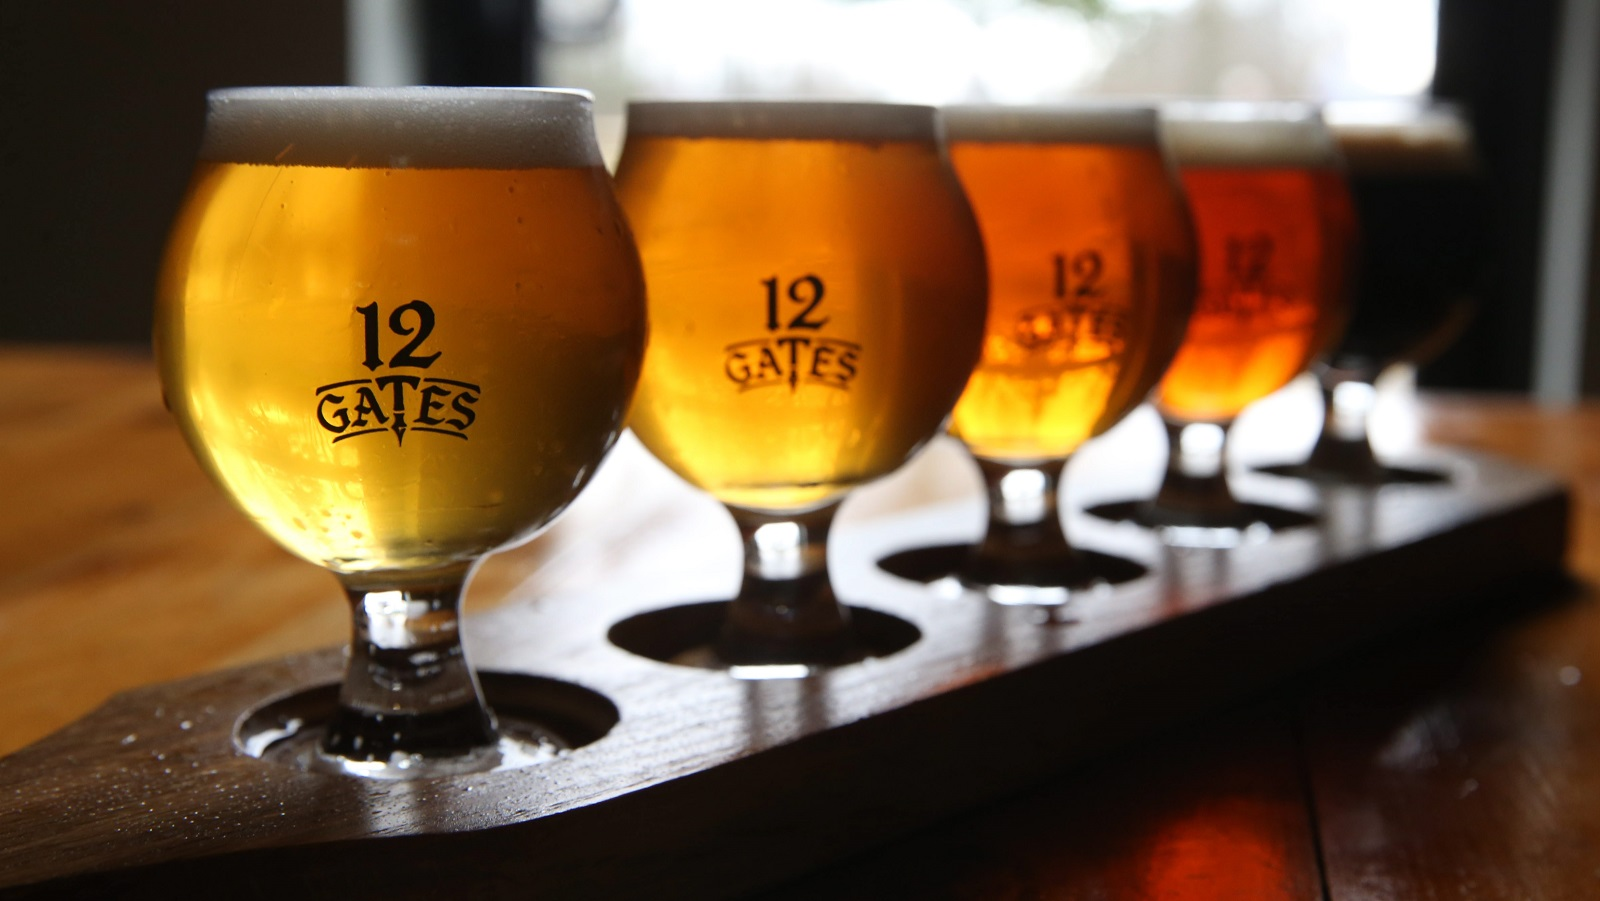 12 Gates Brewing Company celebrates its first anniversary. (Sharon Cantillon/Buffalo News file photo)